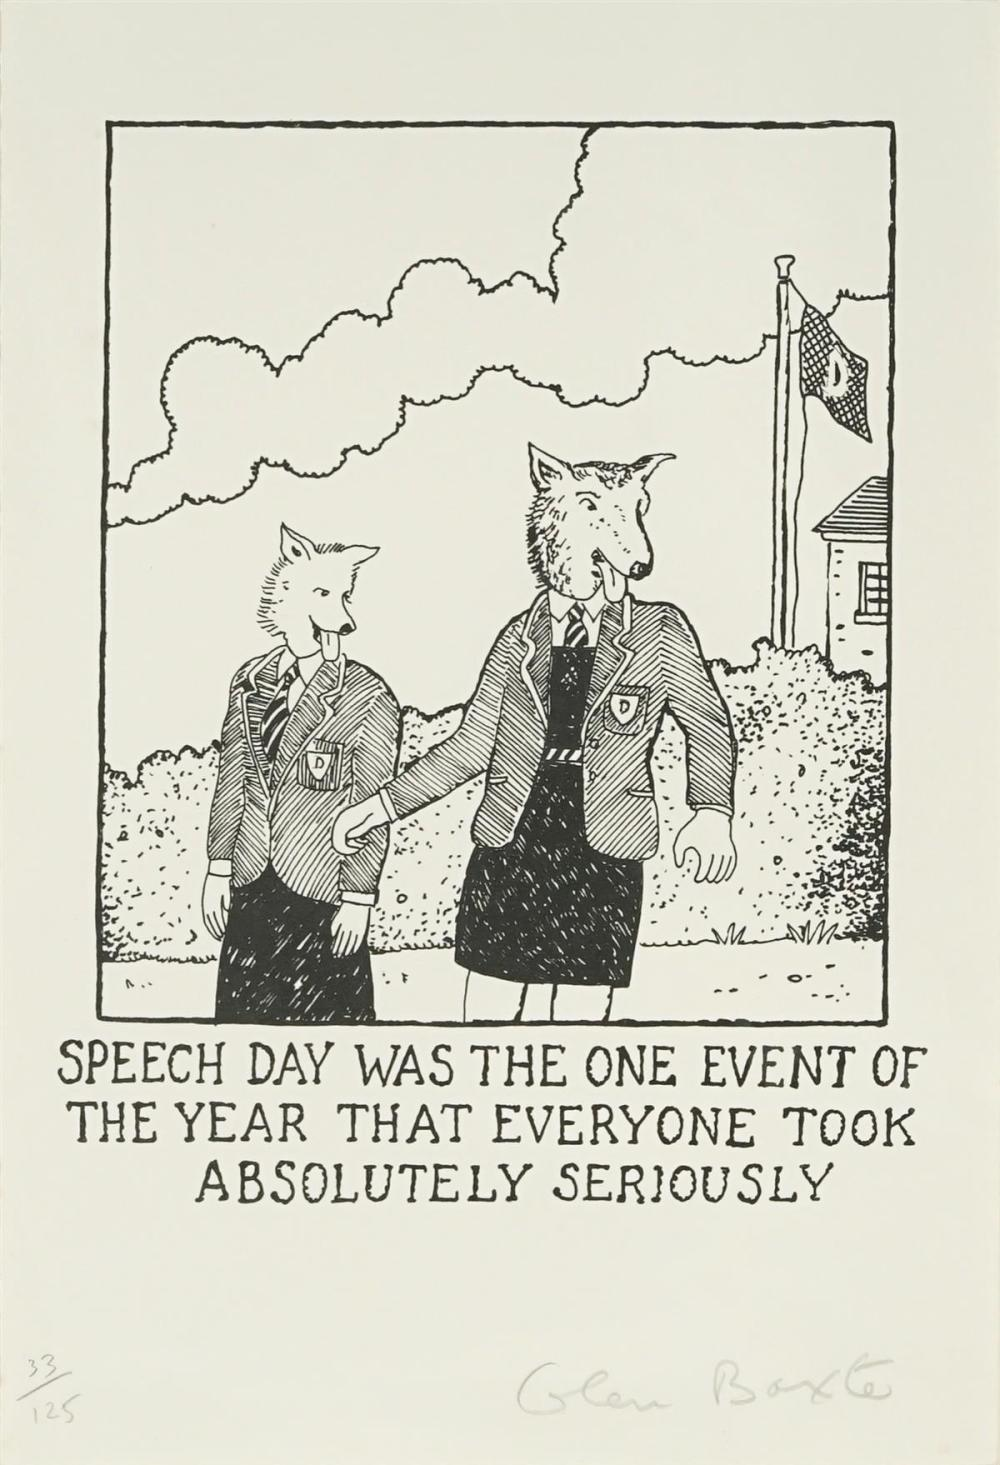 Glen Baxter (1944 - ) - Speech day was the one event of the year that everyone took absolutely seriously 26 x 38cm